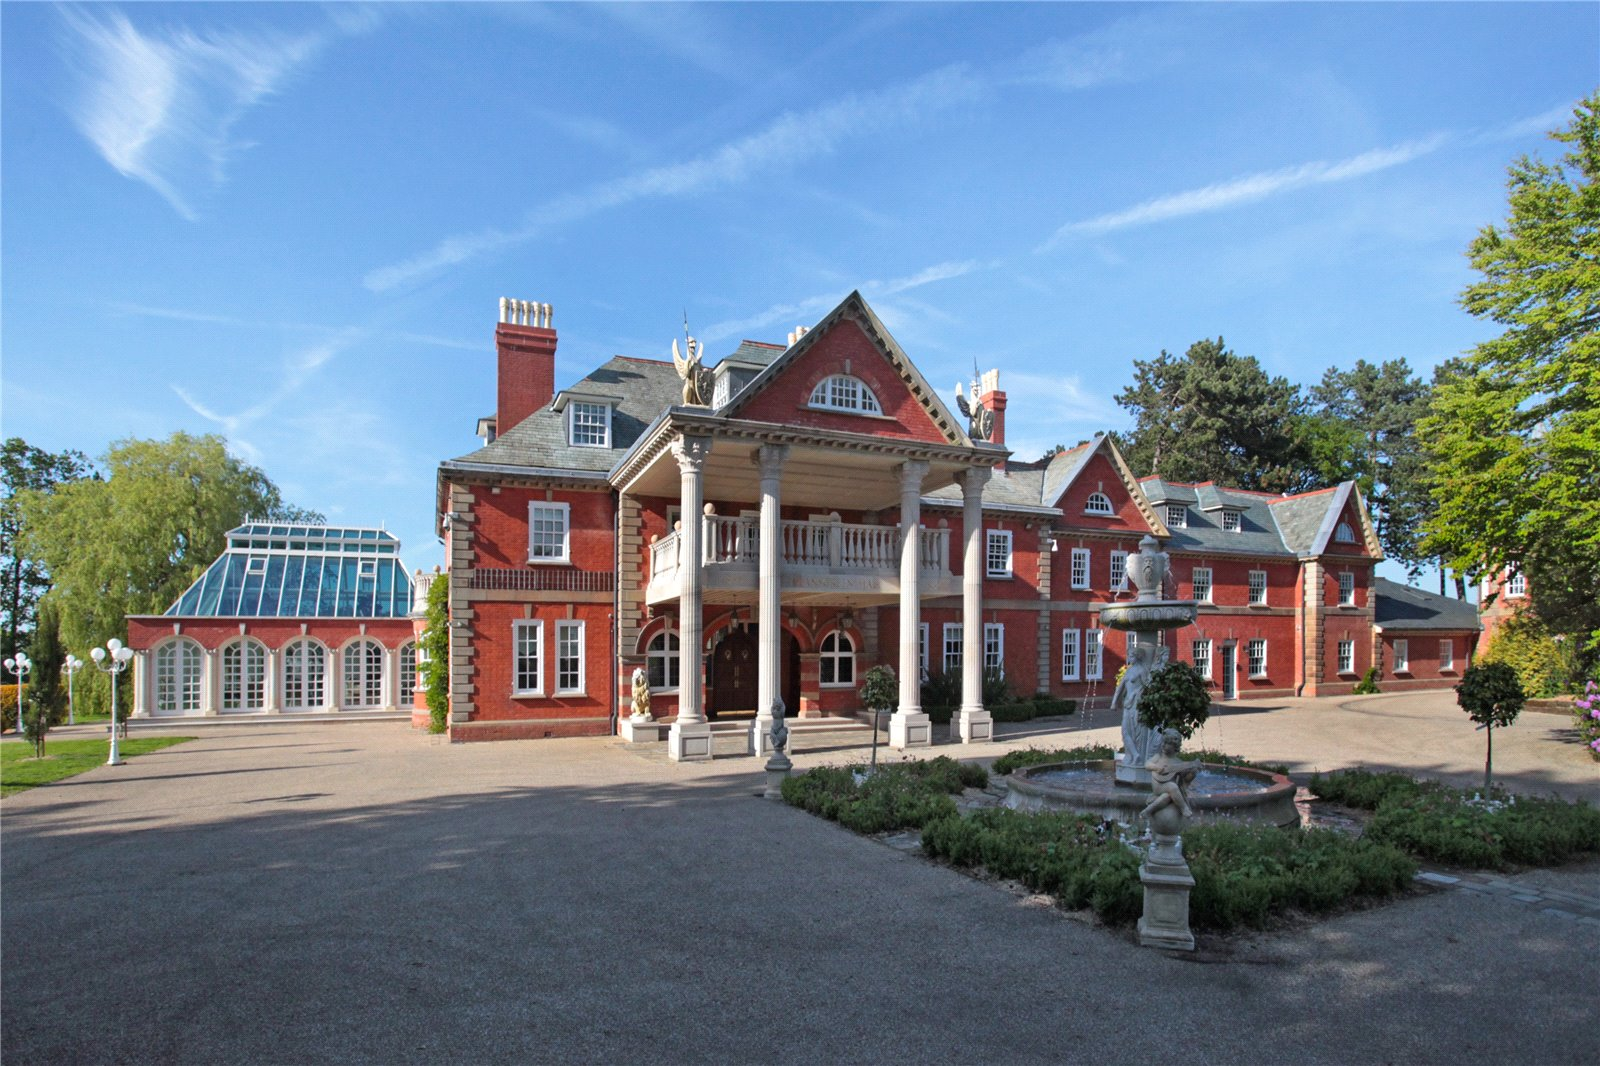 One of cheshires finest country houses approximately 20000 sq ft with magnificent leisure suite and 5588 sq ft luxury garaging hangar facility